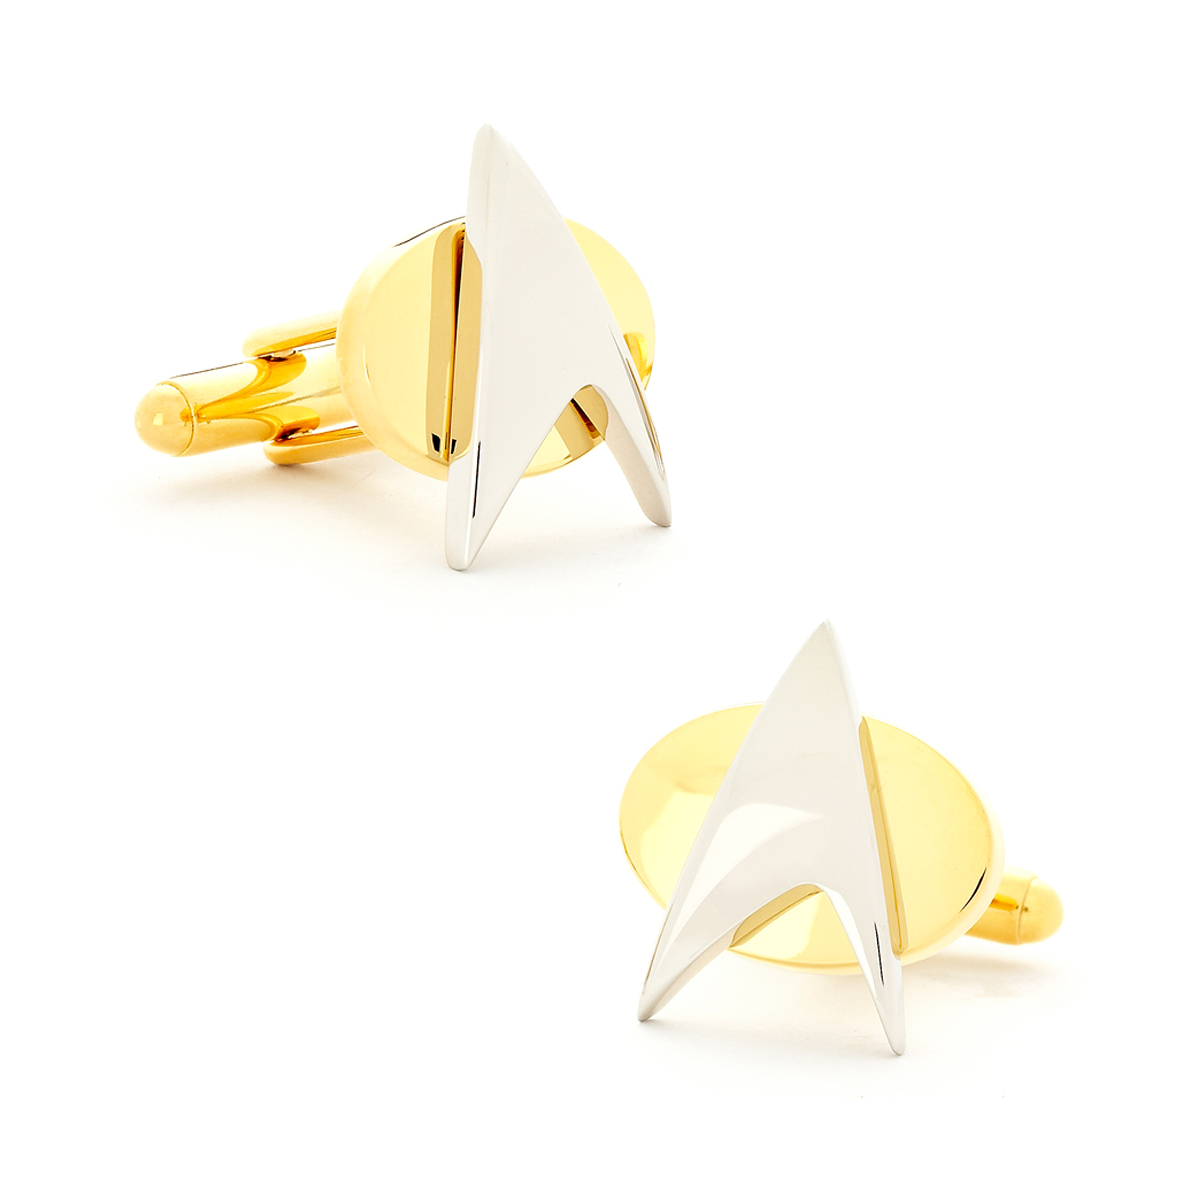 Star Trek Two Tone Star Trek Delta Shield Cufflinks